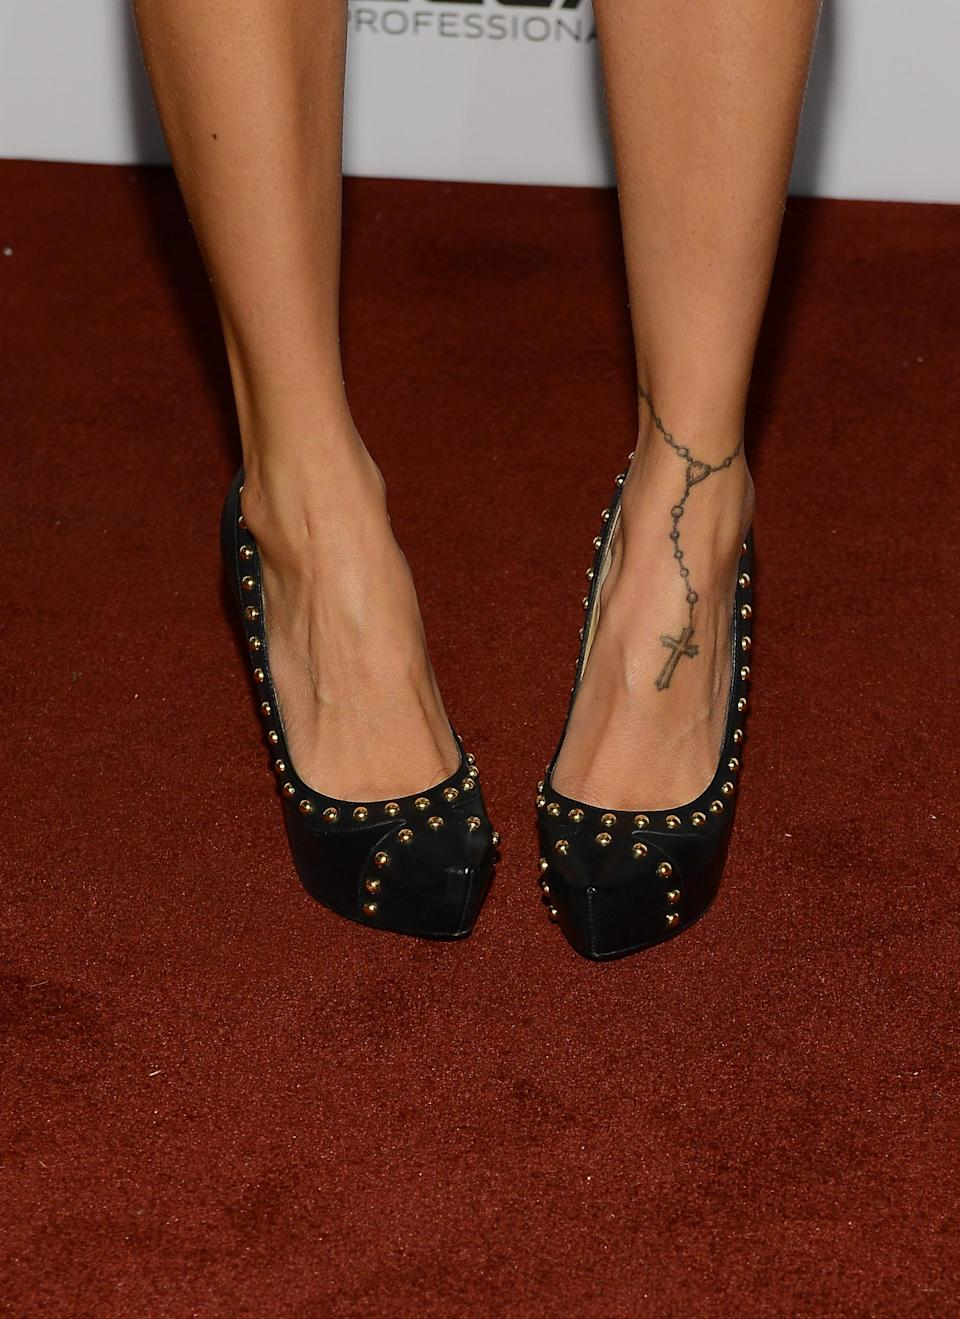 <b>Nicole Richie</b> may want her tramp stamp removed as soon as possible, but she has a soft spot for the rosary on her ankle. It's a fabulous way to accessorize an already fabulous pair of shoes, if you ask us!